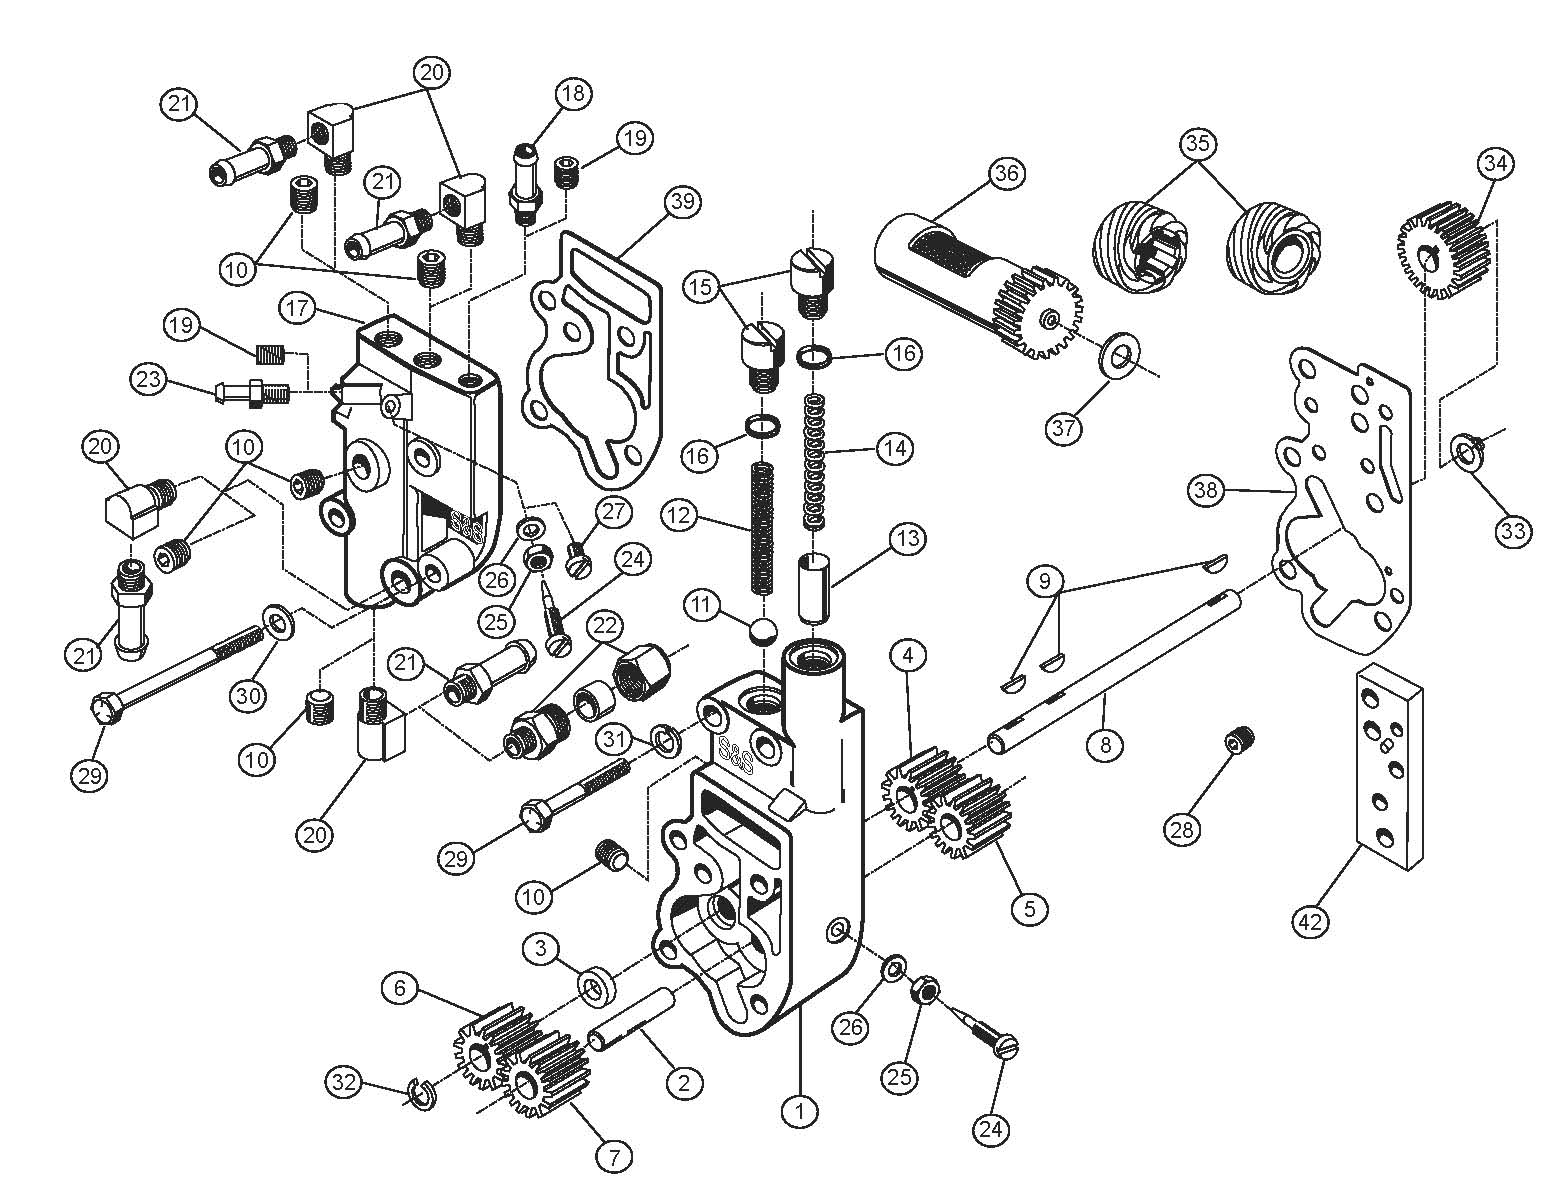 1997 sportster wiring diagram wiring diagram database1997 sportster oil pump diagram electrical schematic wiring diagram 1996 [ 1554 x 1195 Pixel ]